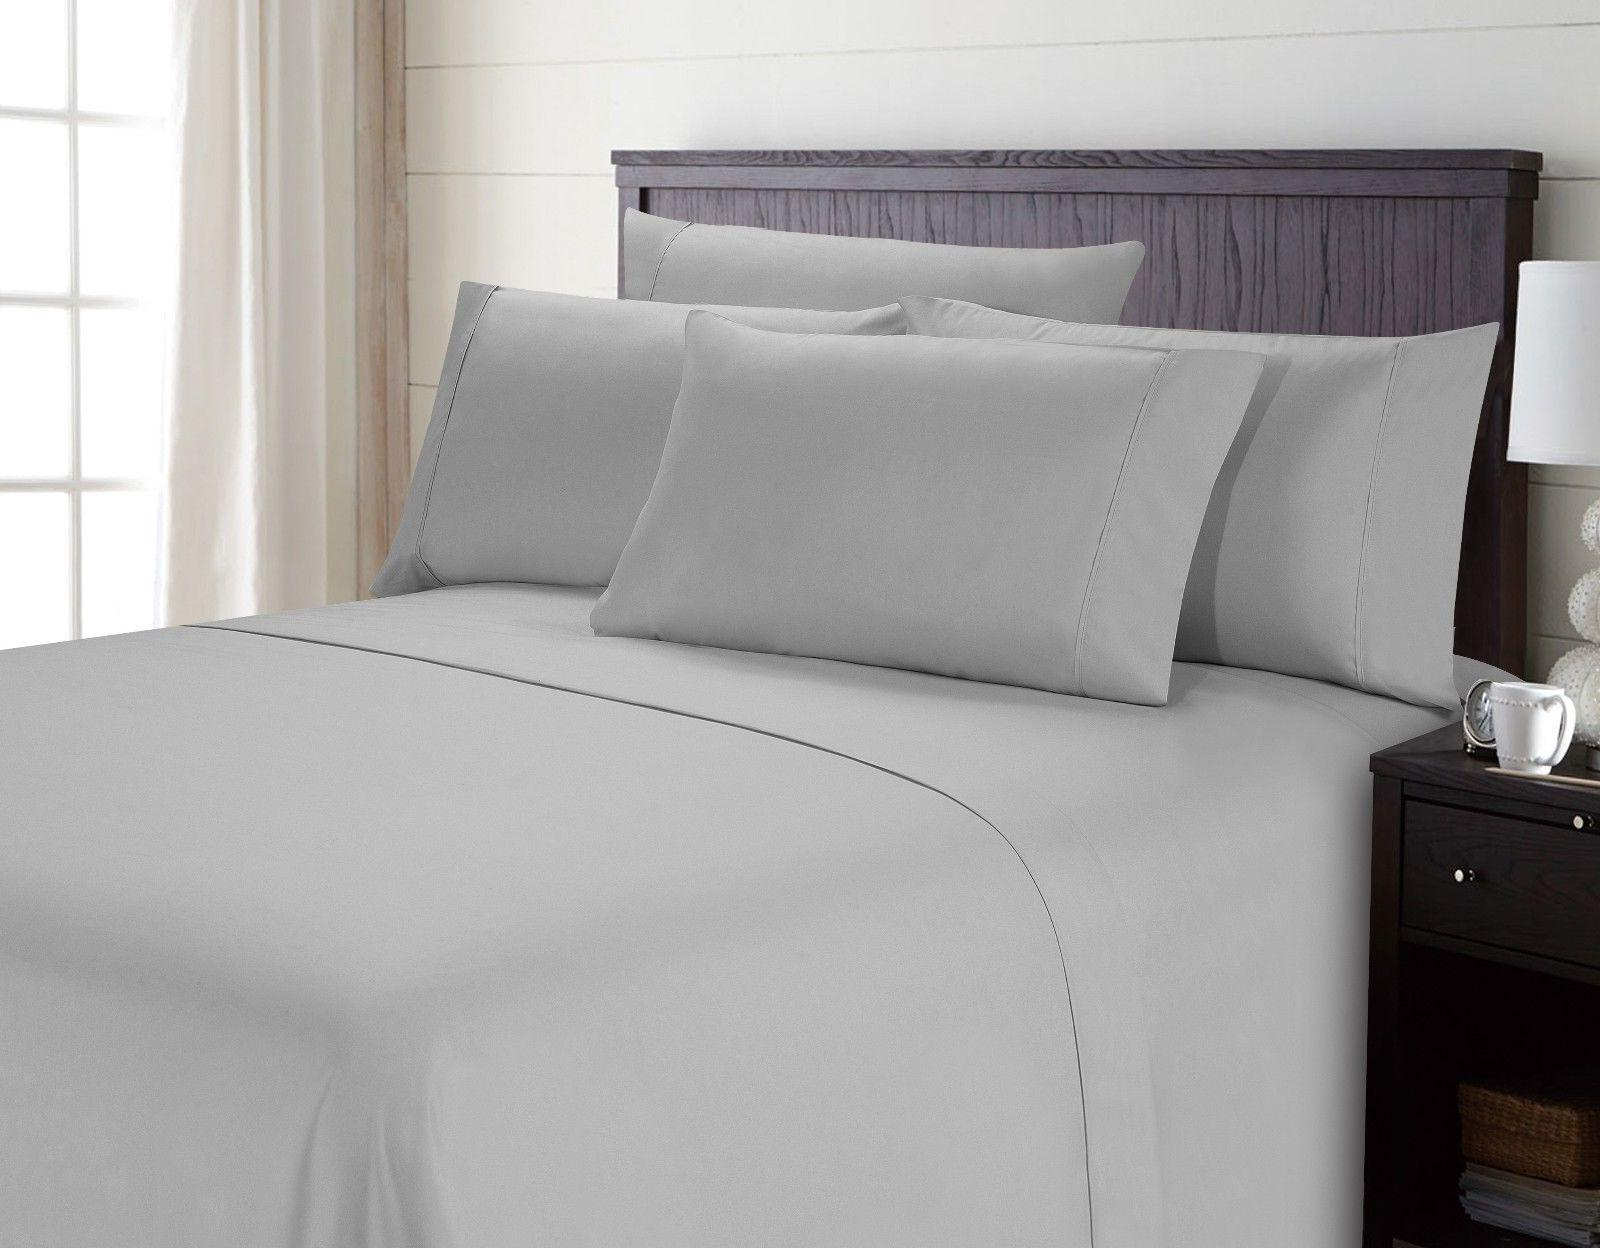 RV QUEEN 1800 THREAD COUNT BED SHEET SET . out! 1/2 price!!